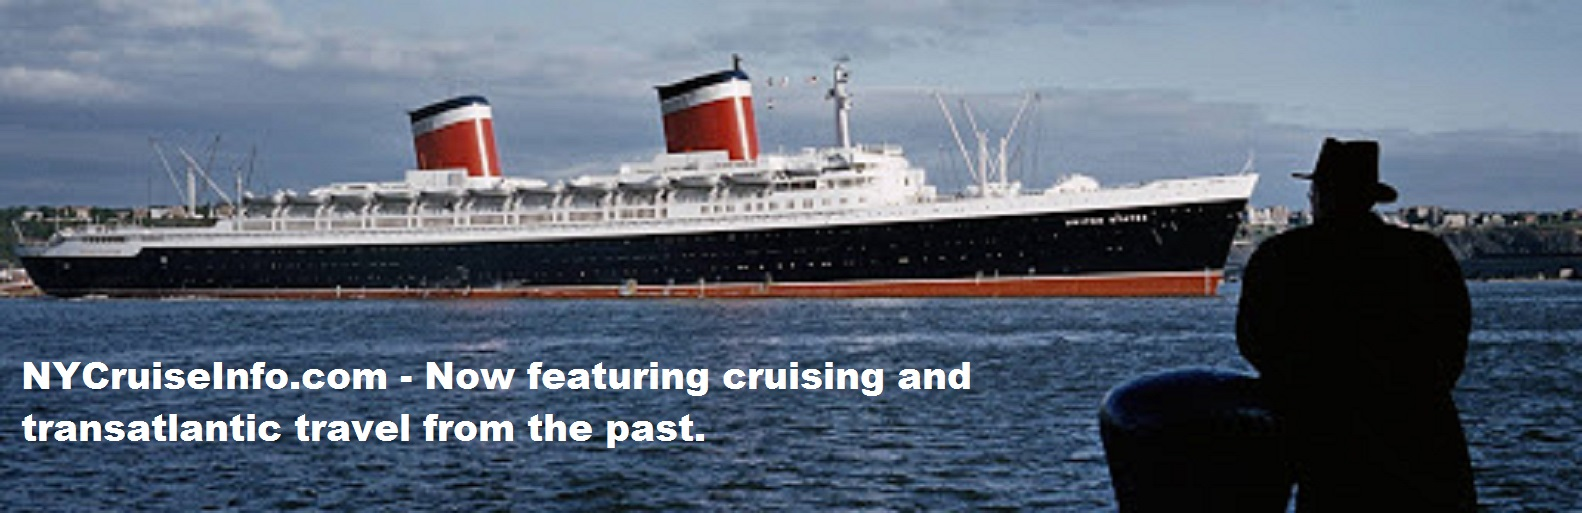 Historical Cruising From New York - SS United States